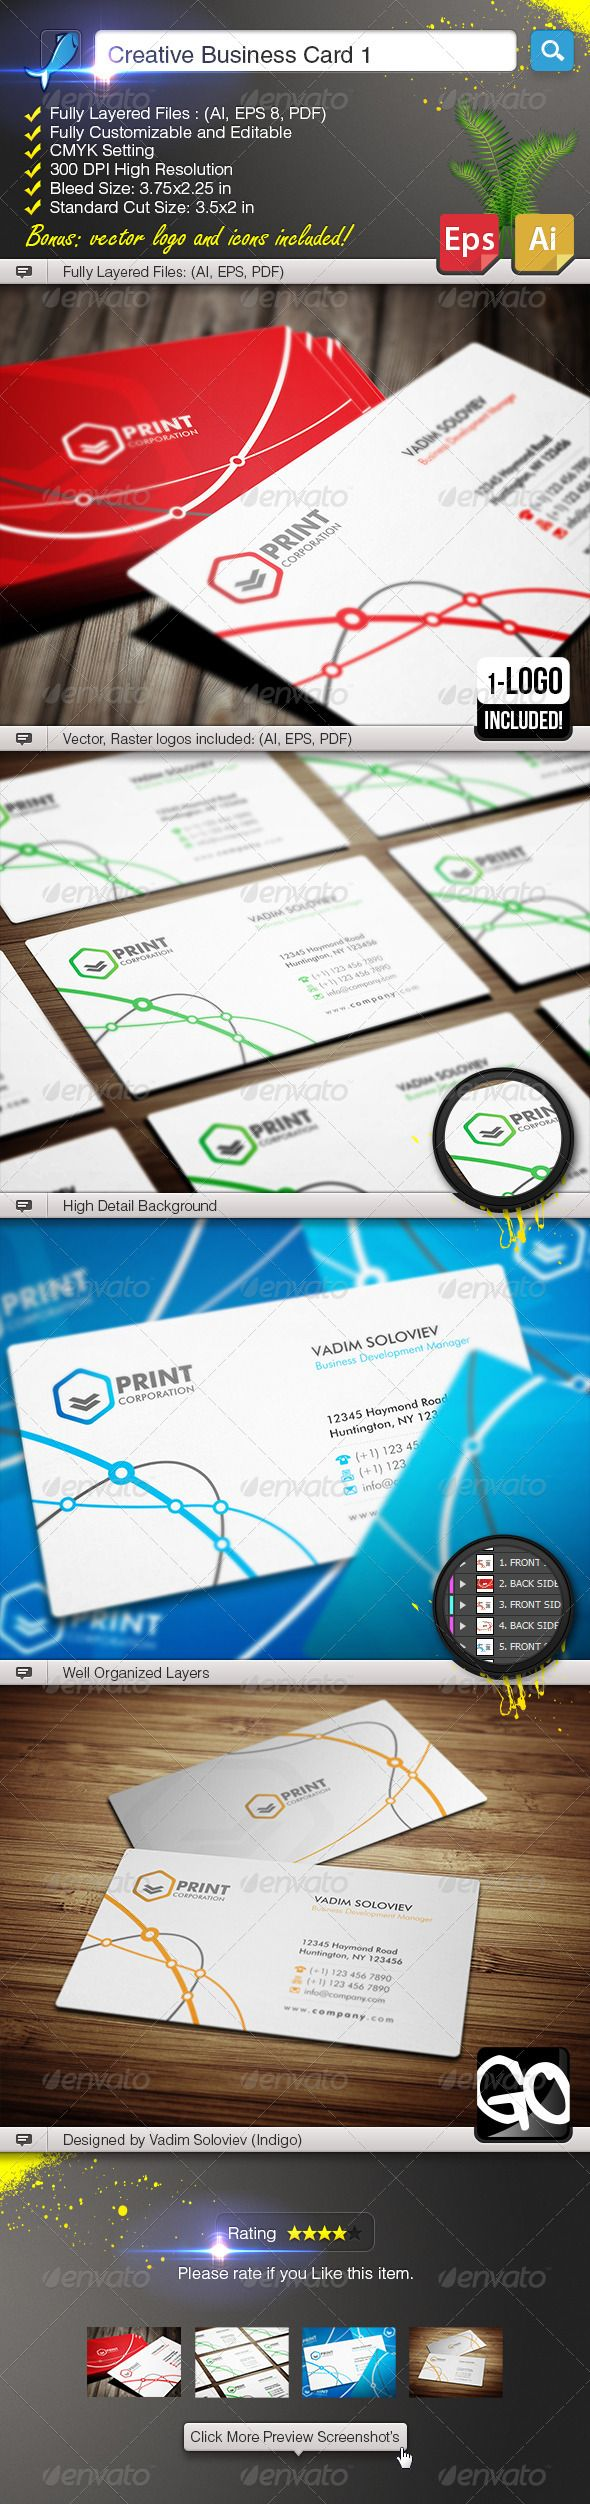 90 best print templates images on pinterest print templates font creative business card 1 graphicriver detail fully layered files ai eps 8 reheart Image collections